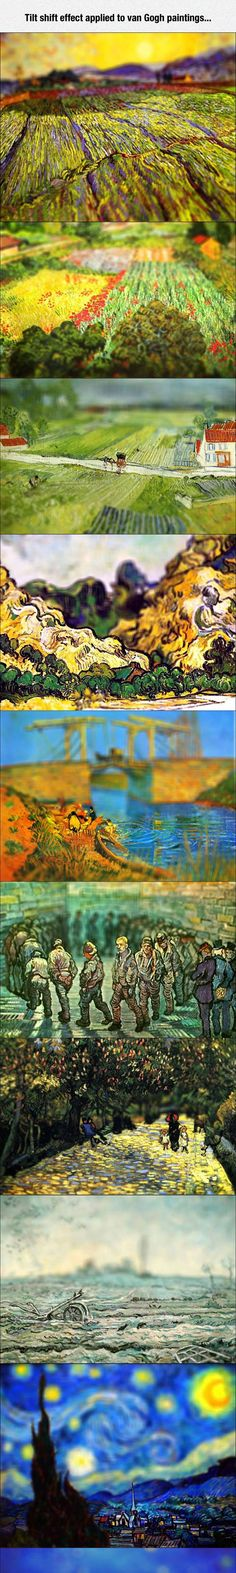 The tilt shift effect applied to Van Gogh paintings